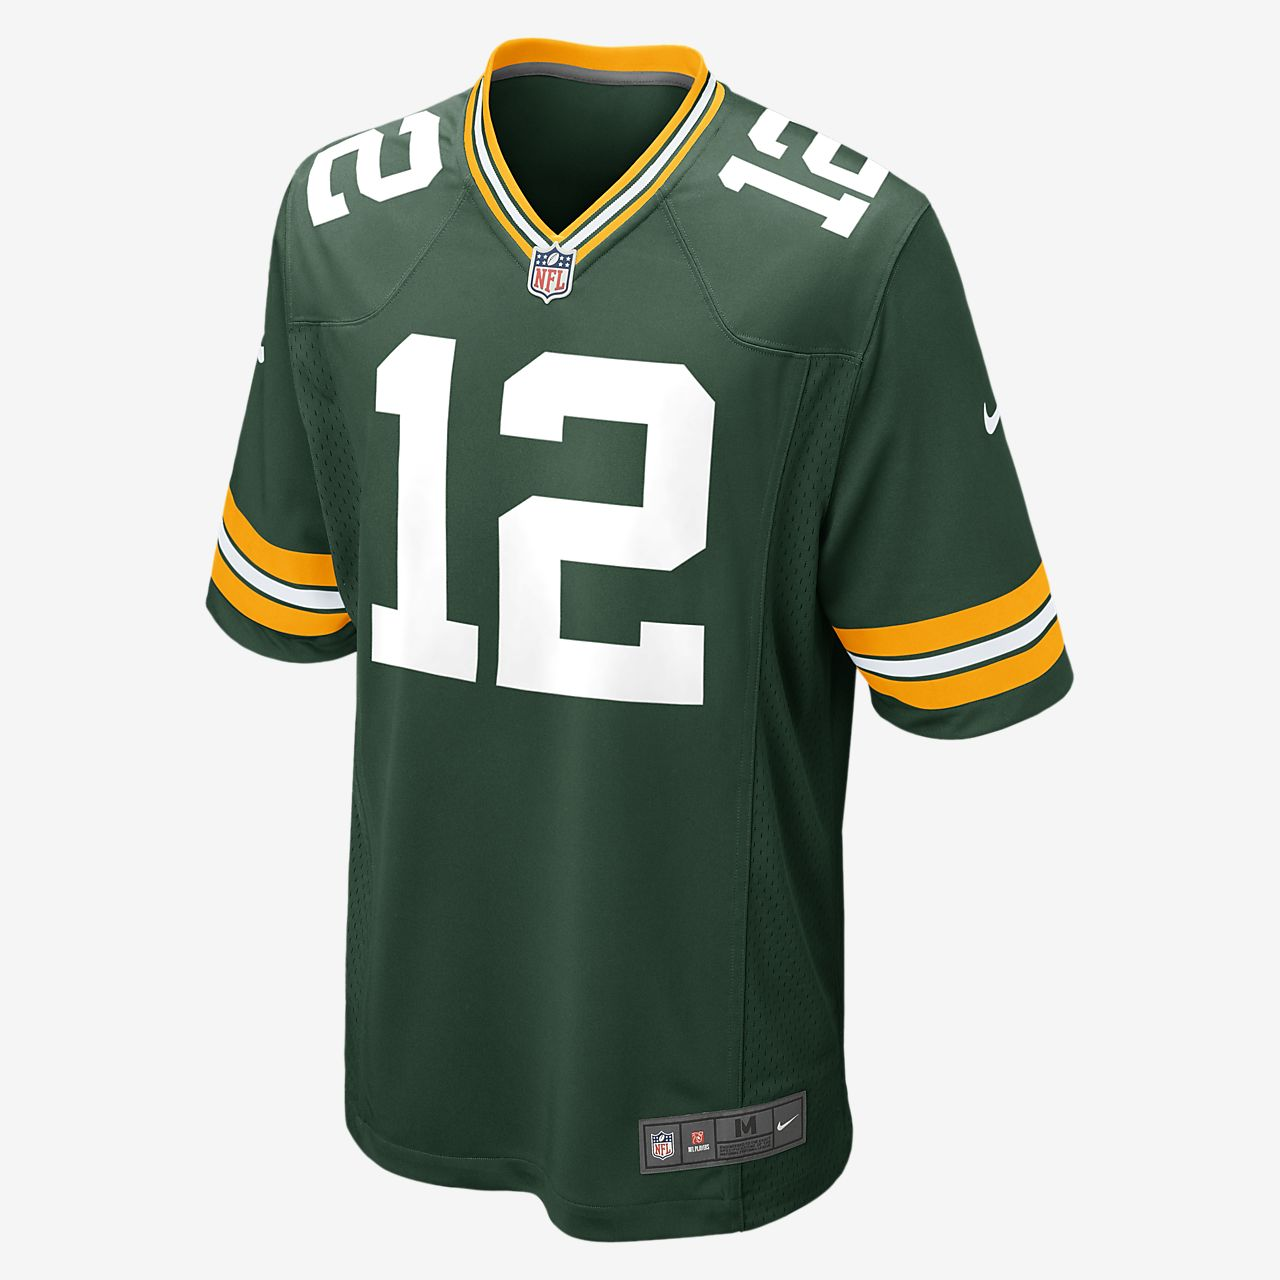 NFL Green Bay Packers (Aaron Rodgers) Men s American Football Home ... d2e84d236